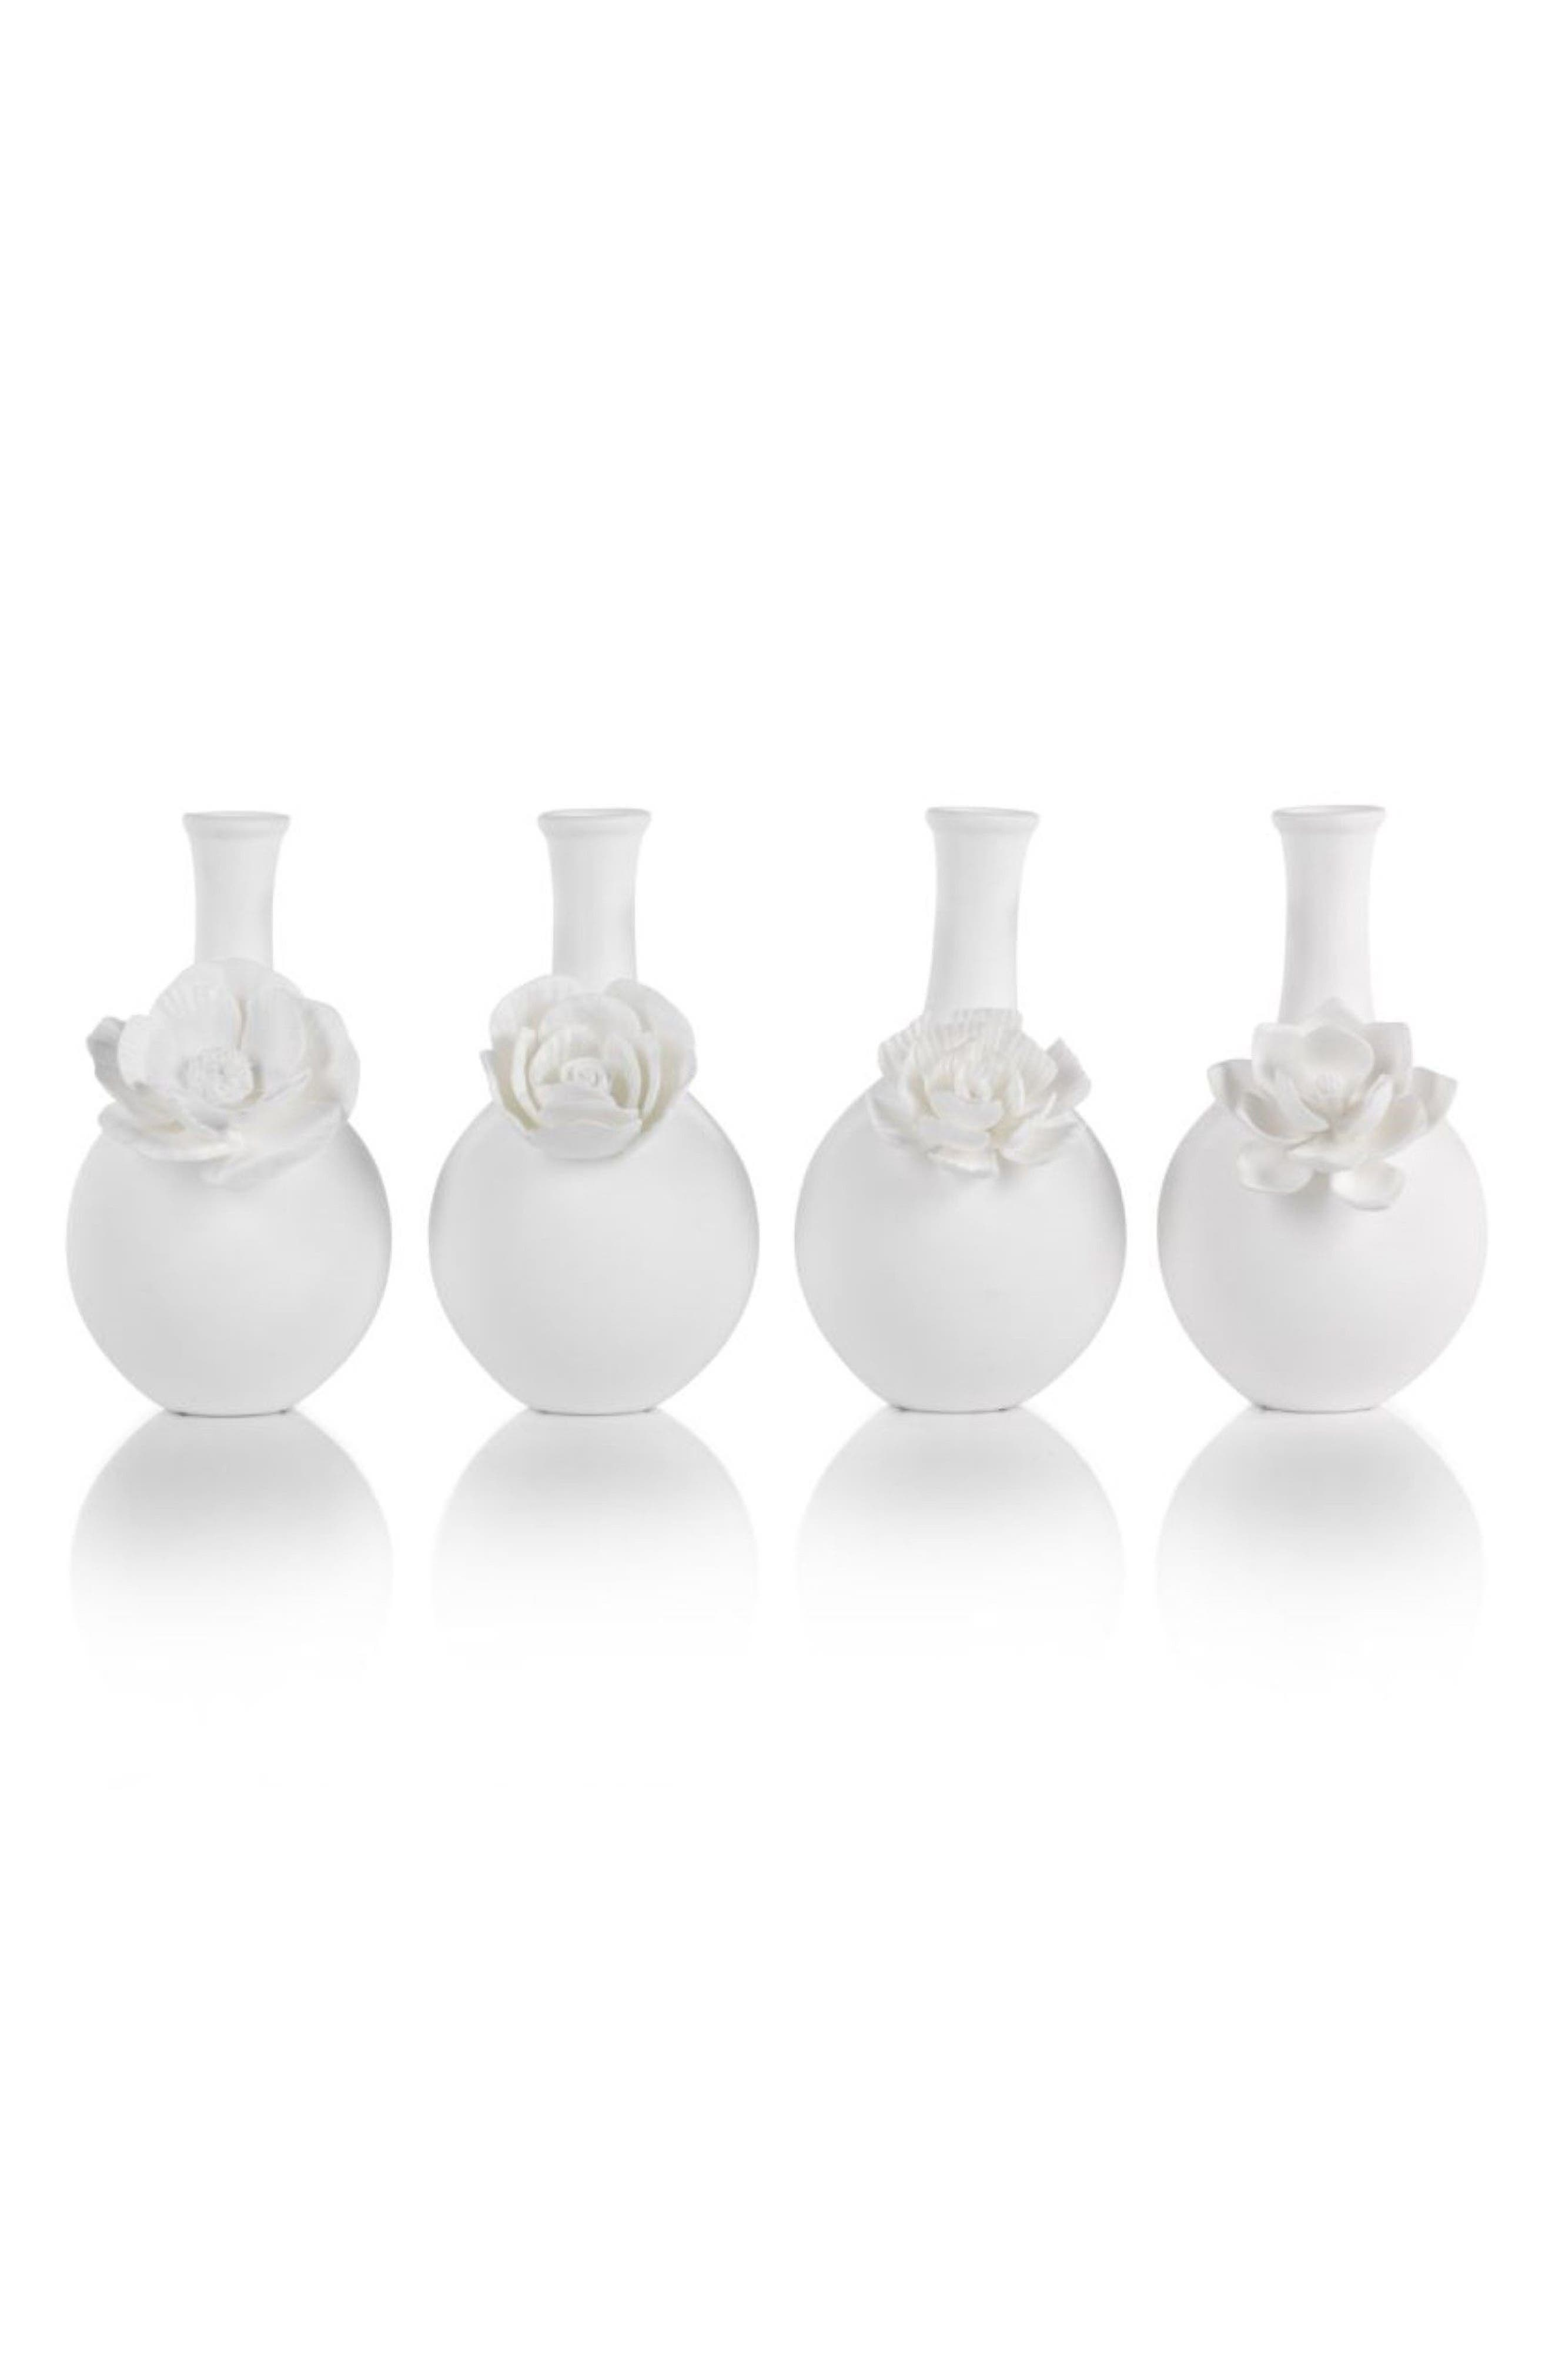 Cameo Set of 4 Porcelain Bud Vases,                         Main,                         color, White